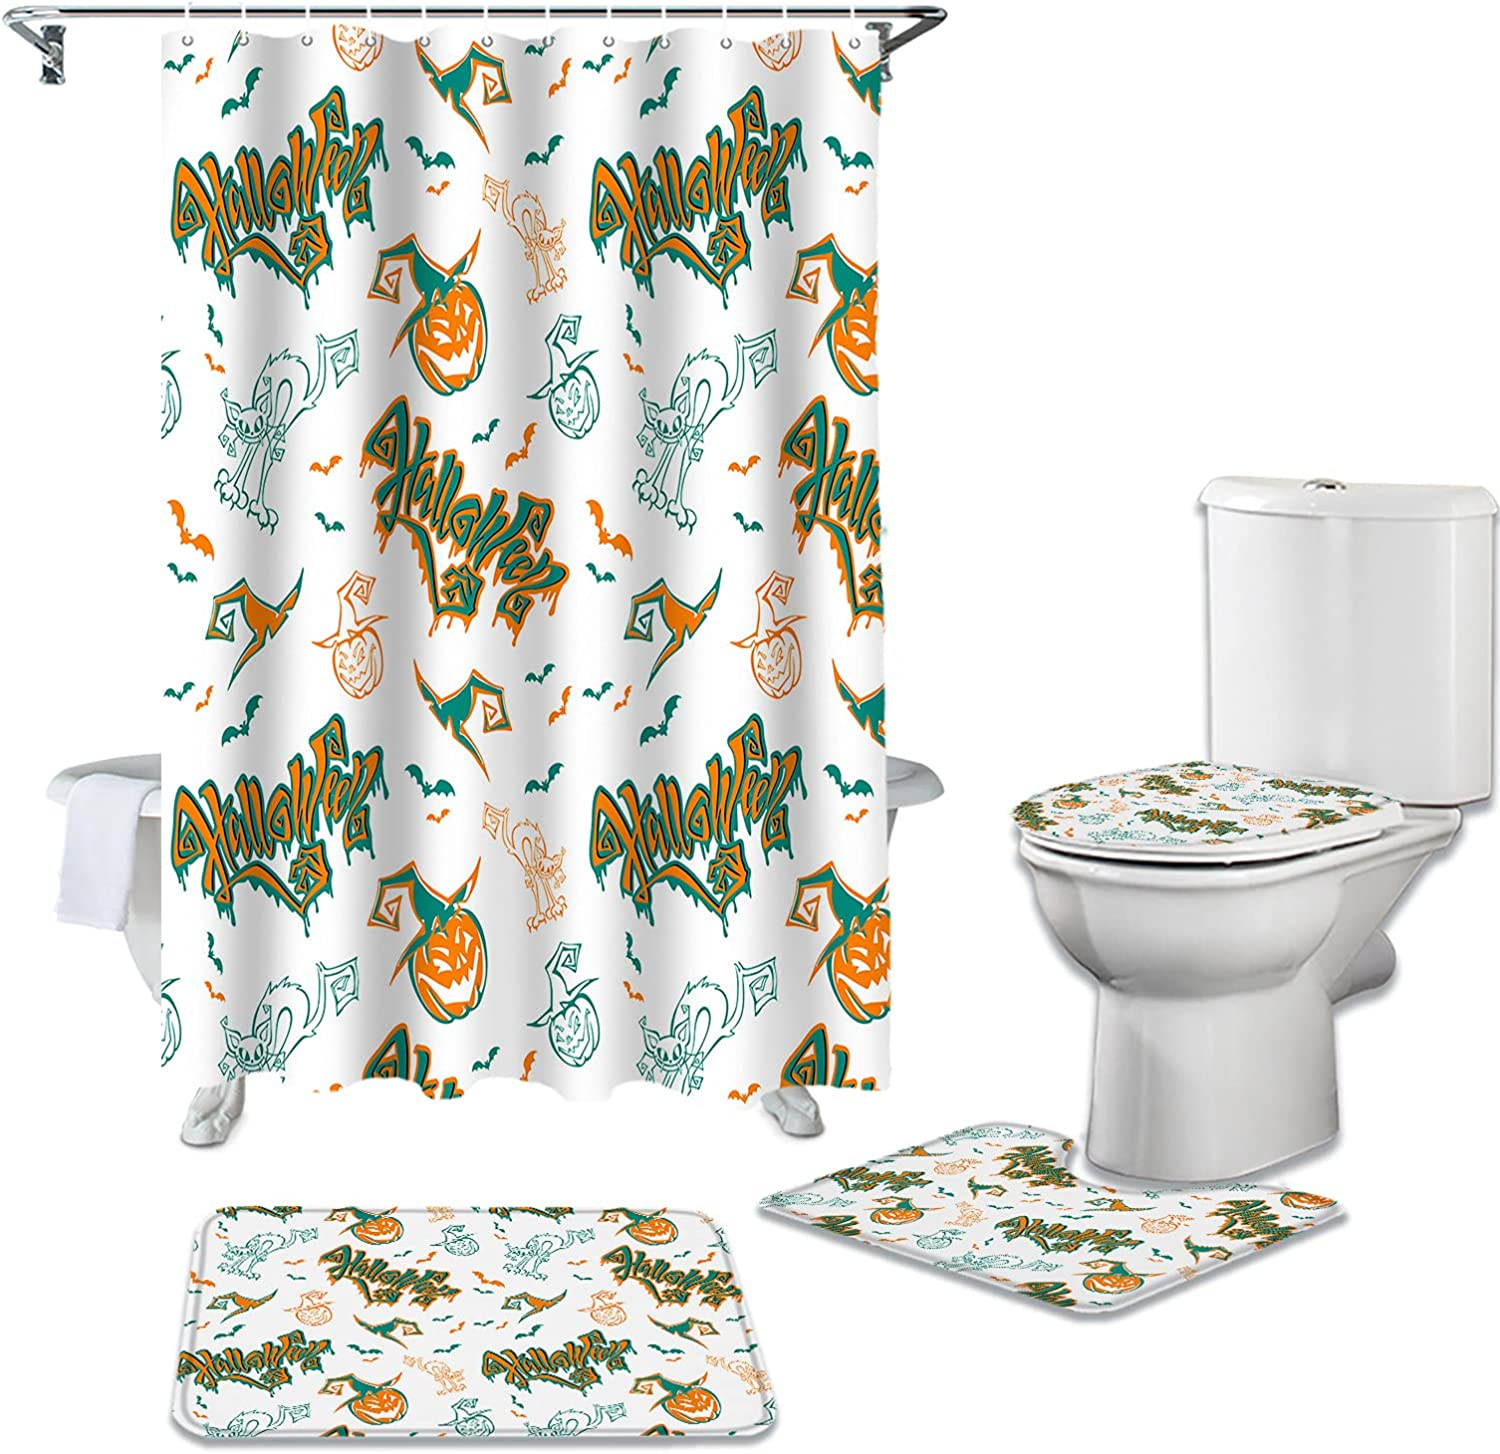 Olivefox Alternative dealer 4 Piece Shower Curtain Set Daily bargain sale R Non-Slip Bathroom with for